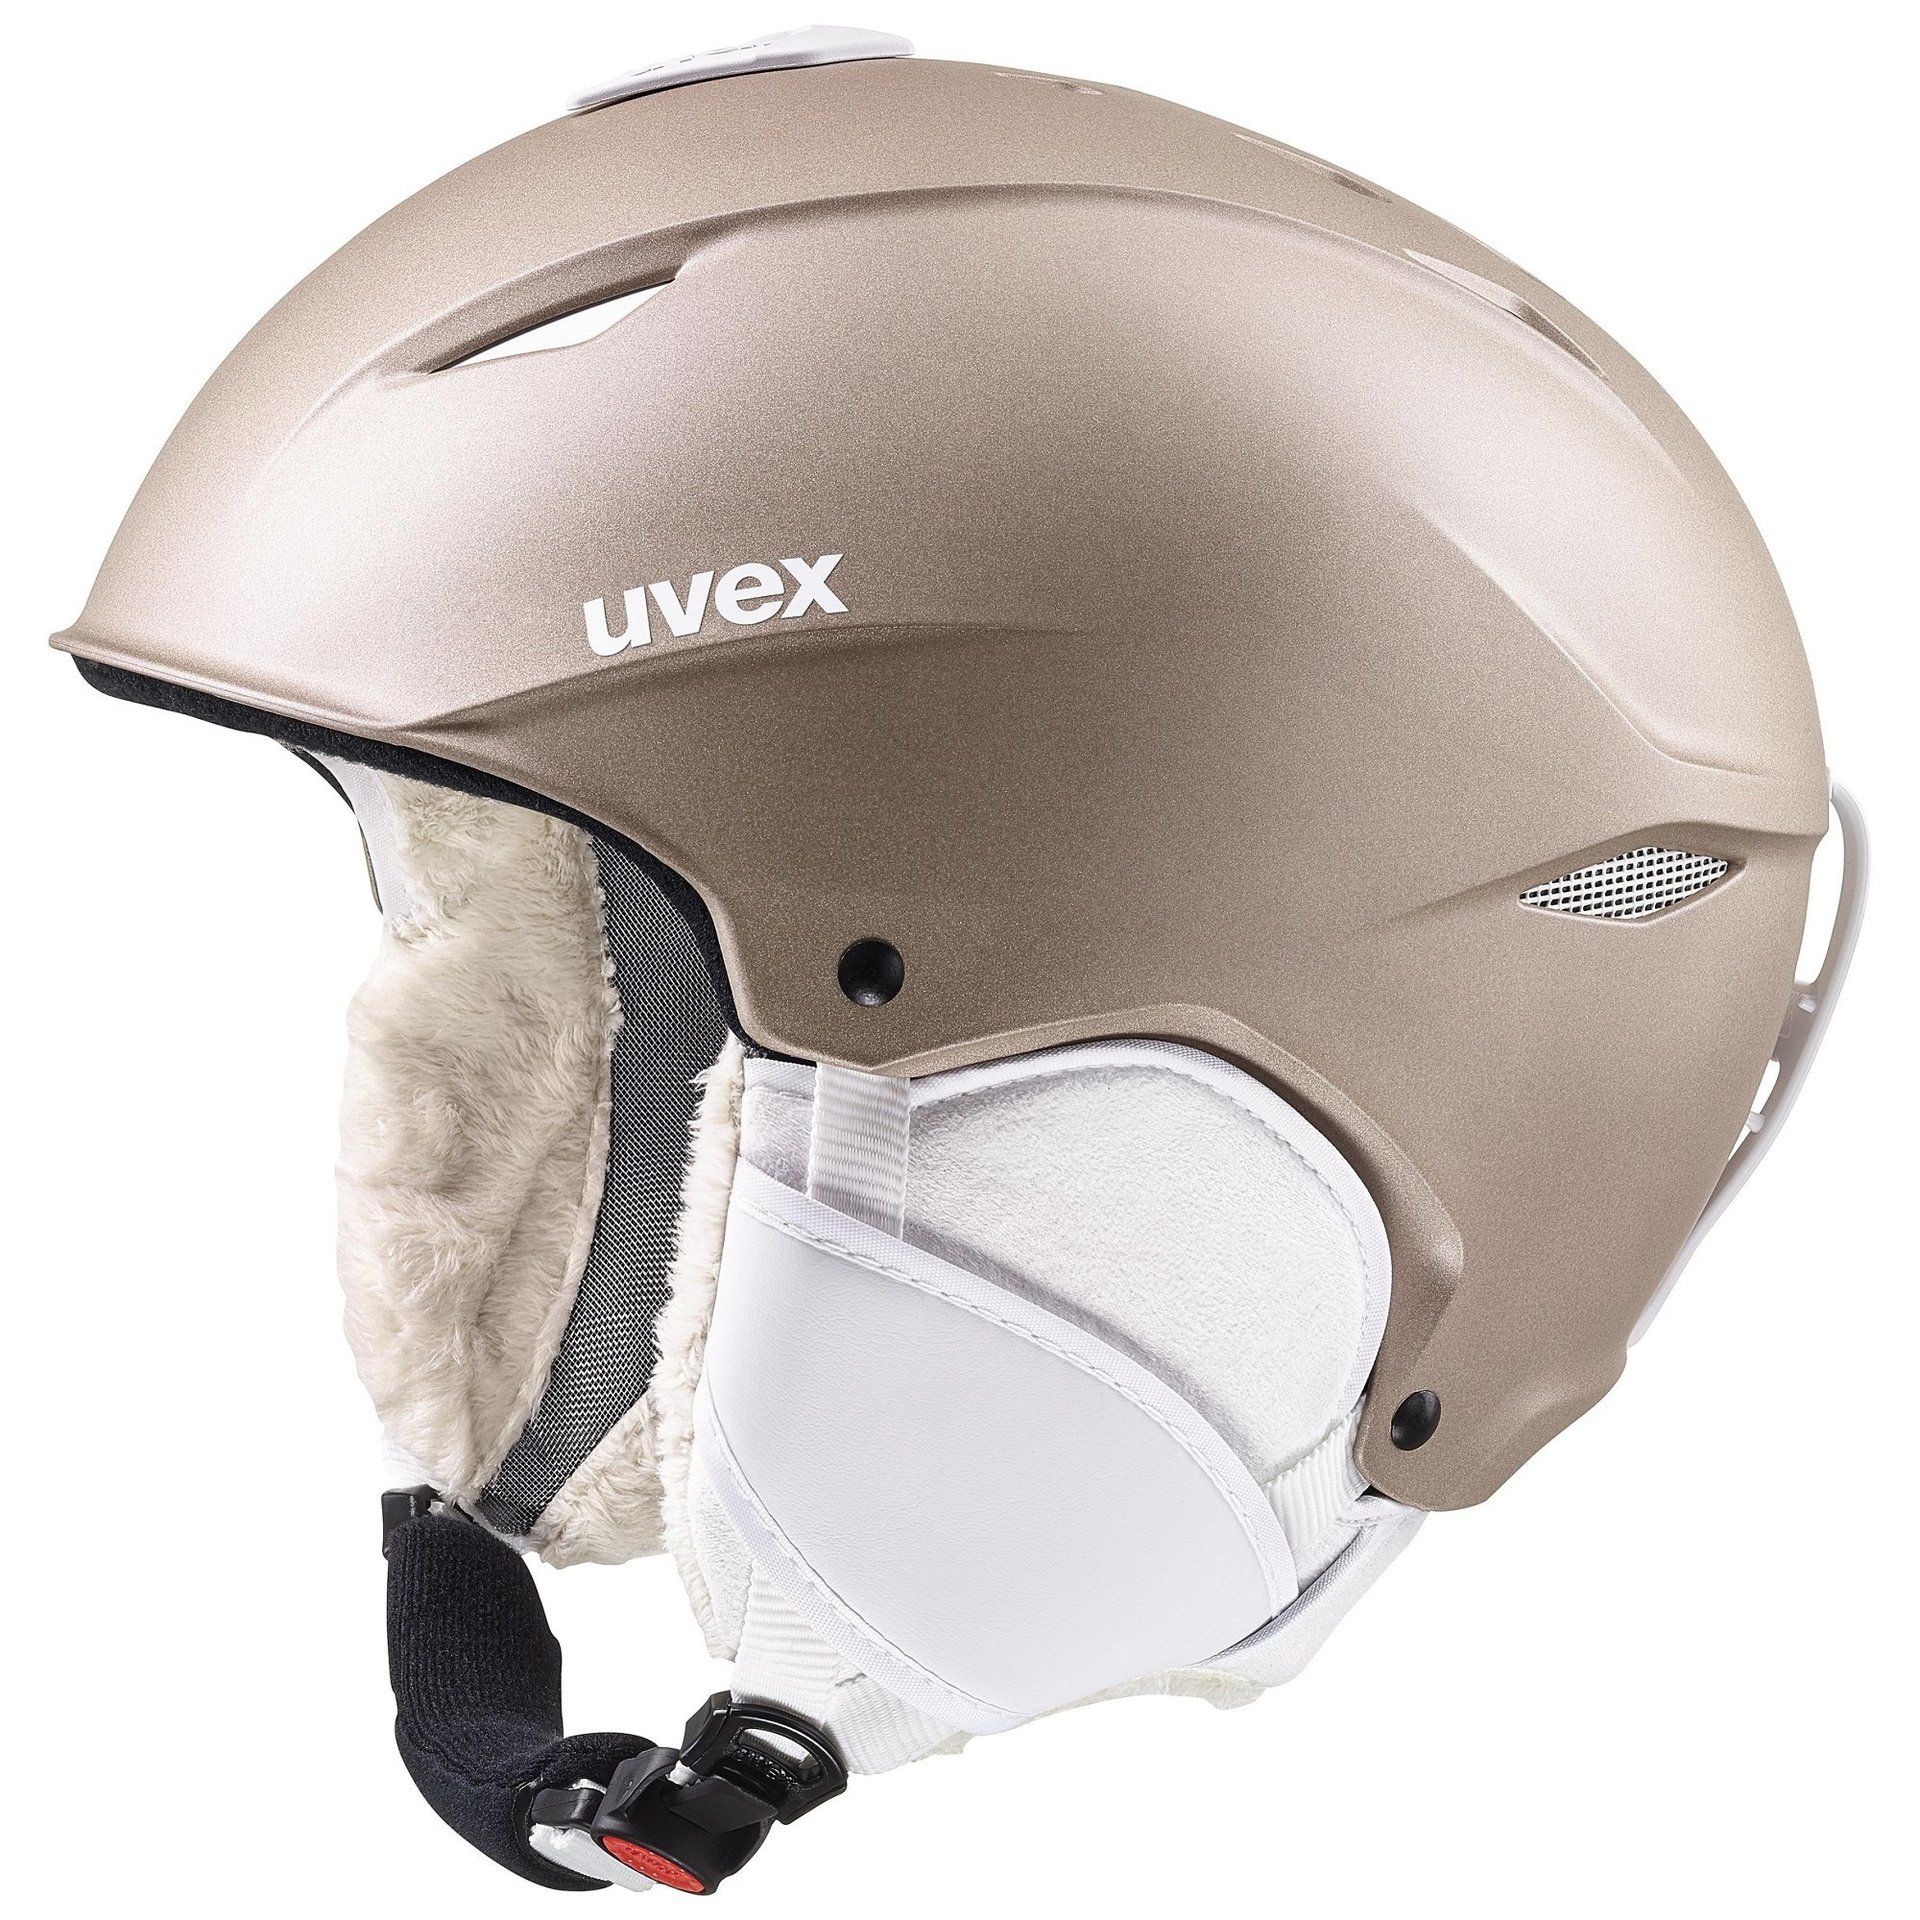 KASK UVEX PRIMO PROSECCO MET MAT